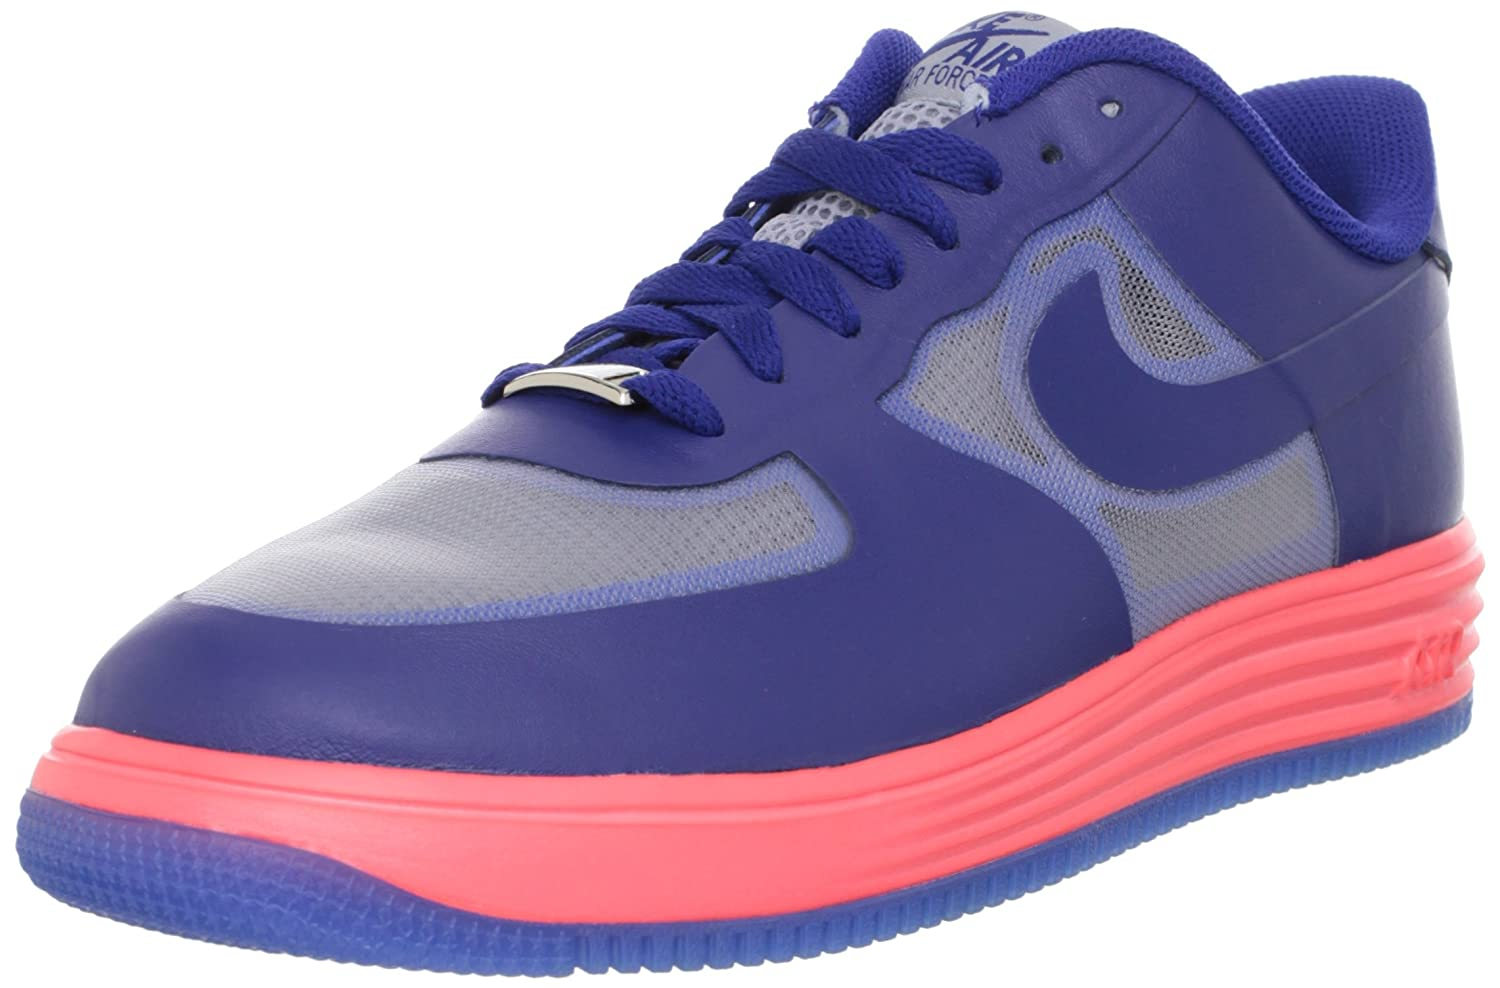 001Lunar Blue ATMC Force 1 Sneakers RYL FUCE RDM Leather Nike599839 Mens Wolf GryDP uJFKTl1c3